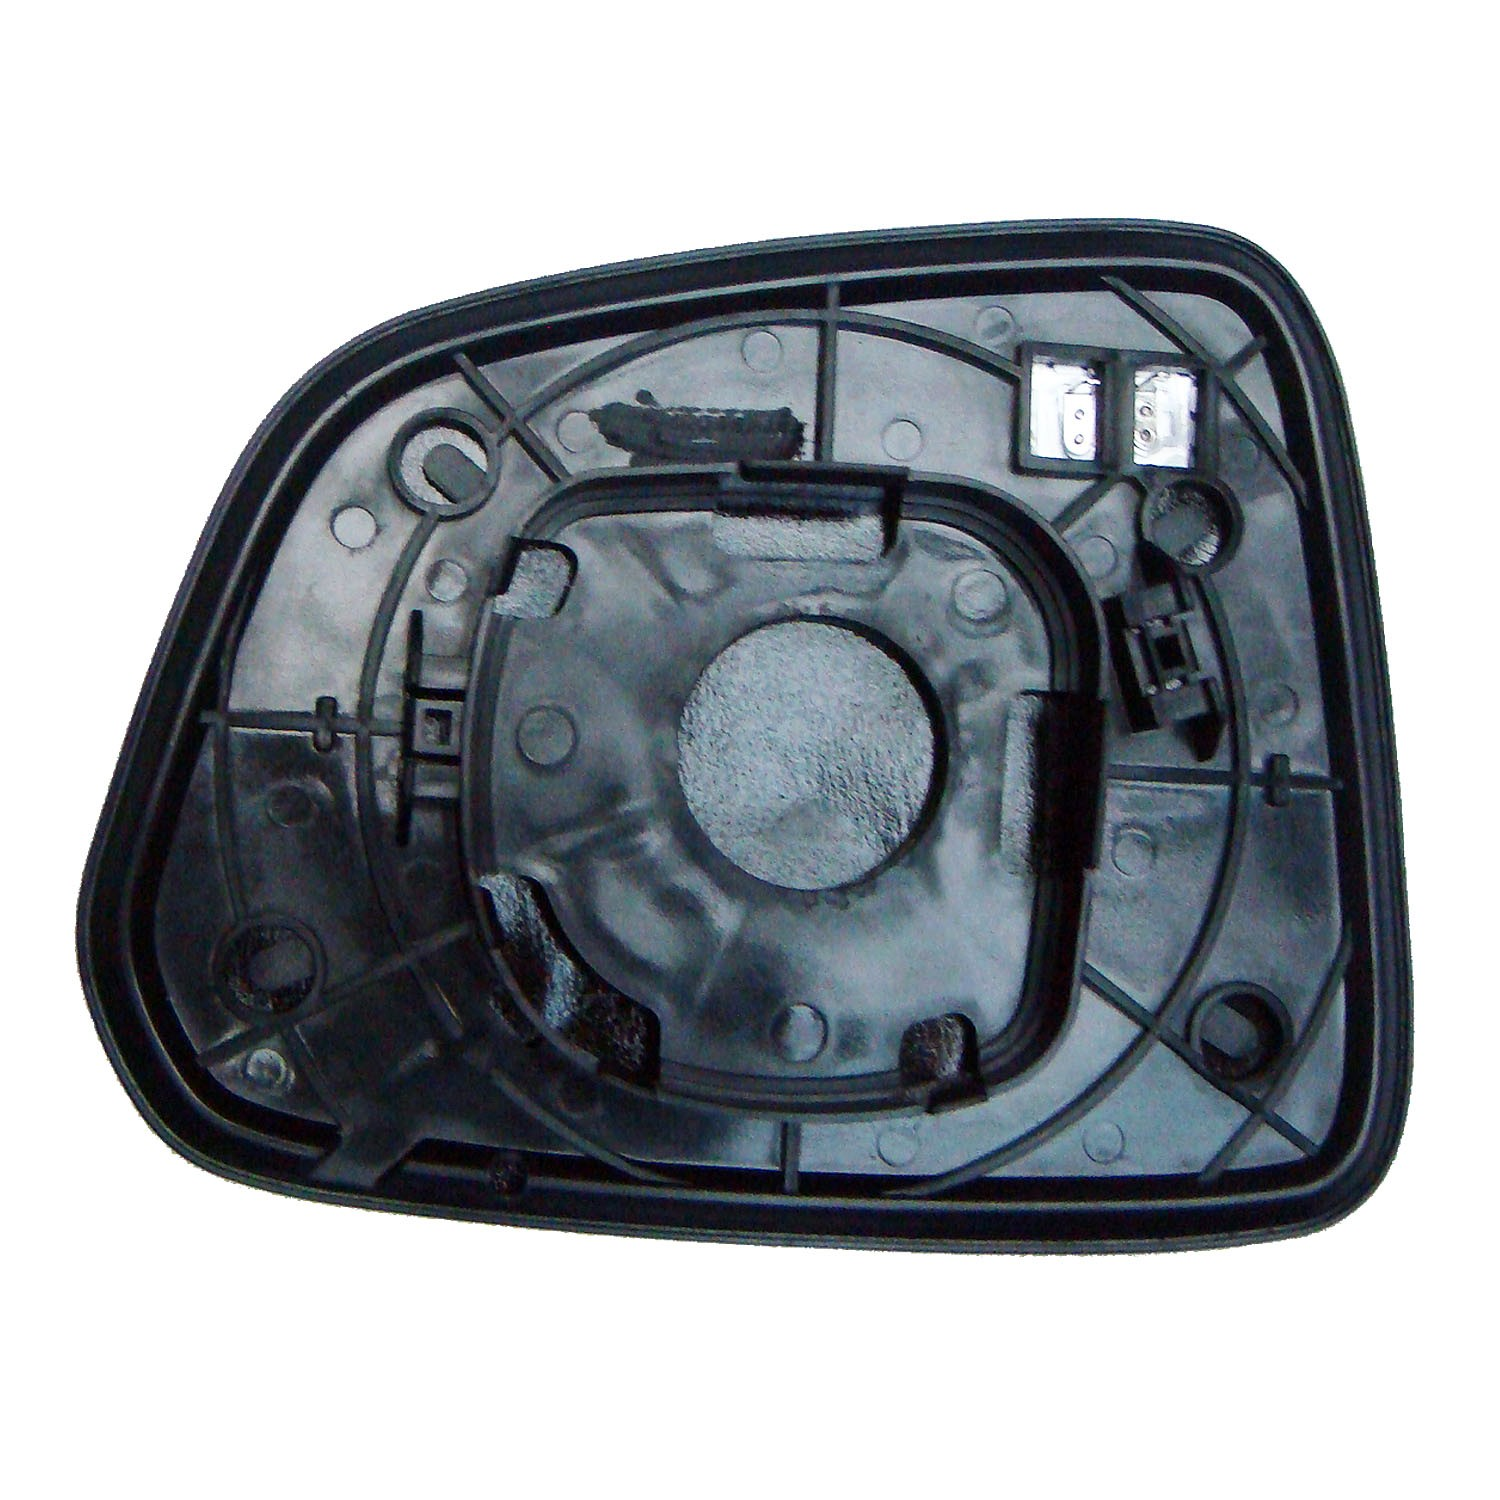 Chevrolet captiva heated wing mirror glass for Mirror glass